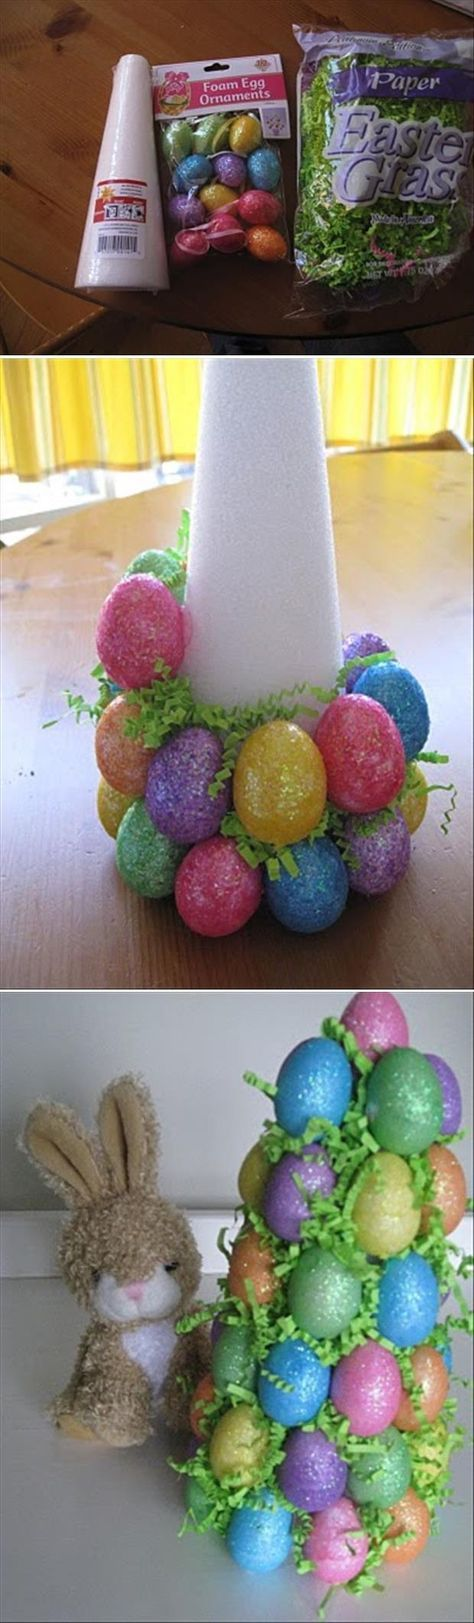 Change to colors of home for more elegant look. Soft color or bright color dots or chevron on cream and eggs.